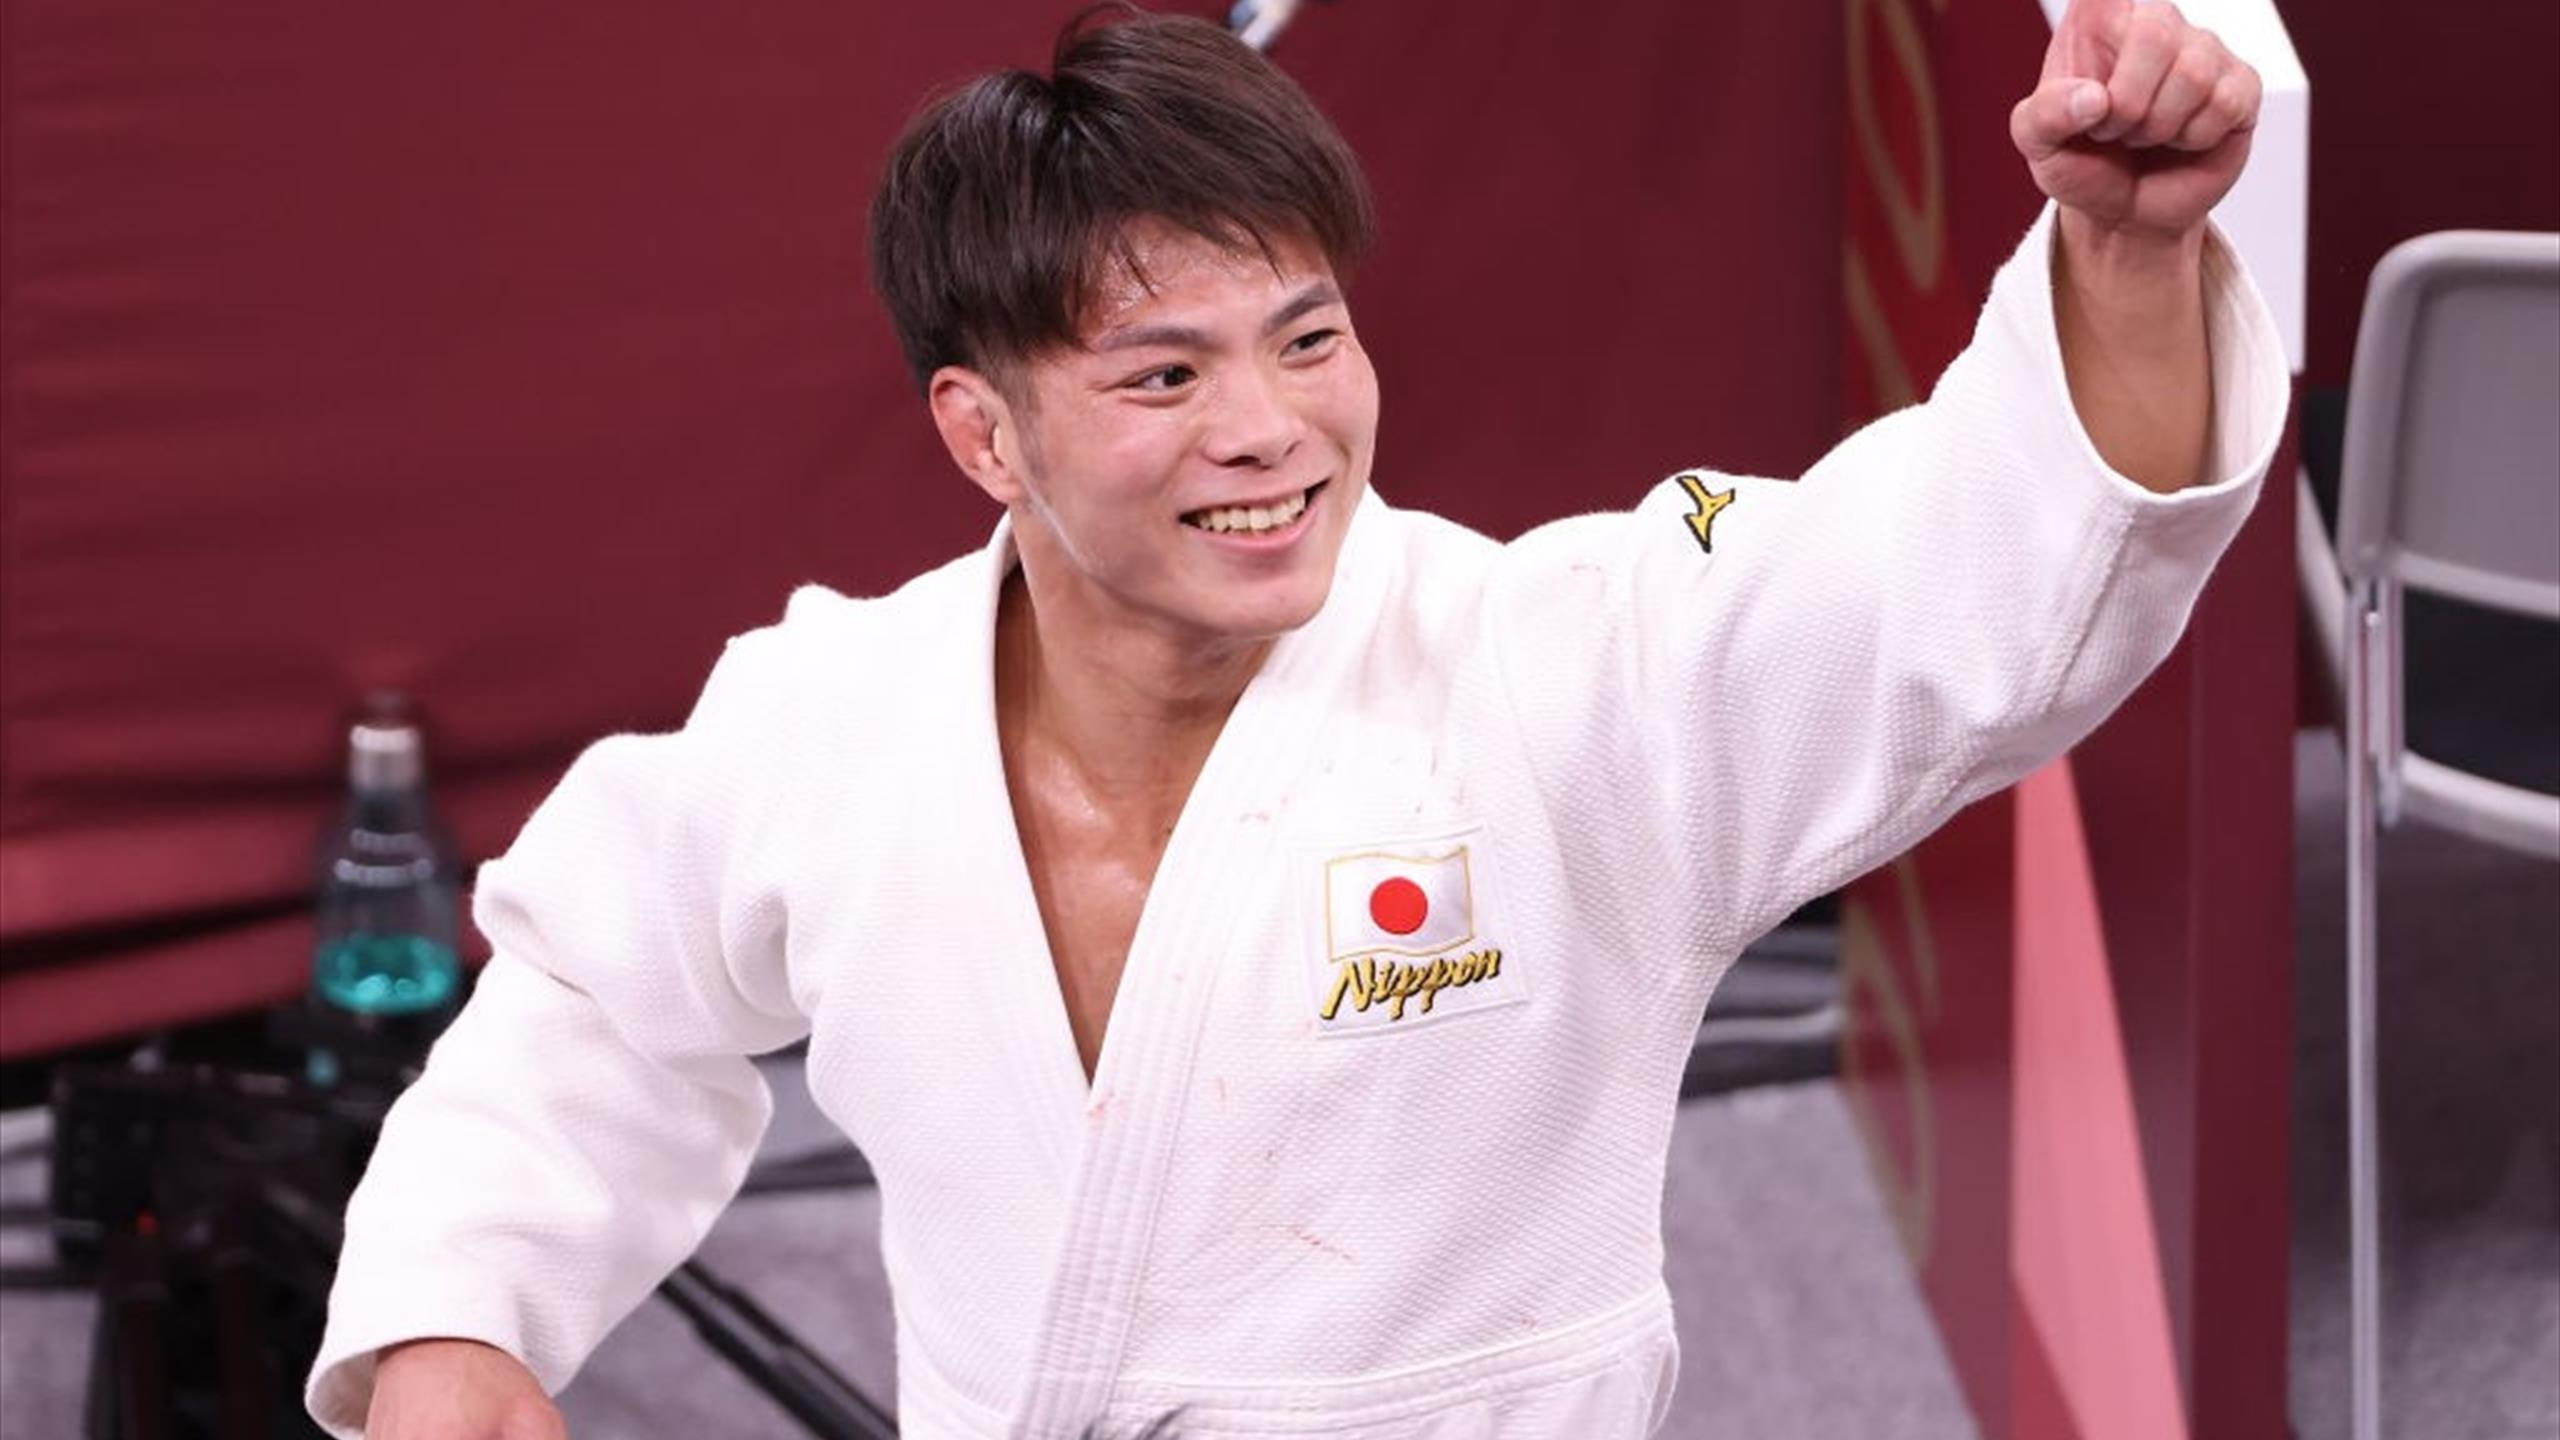 Tokyo 2020    Japanese brother and sister Abe both achieve gold in judo